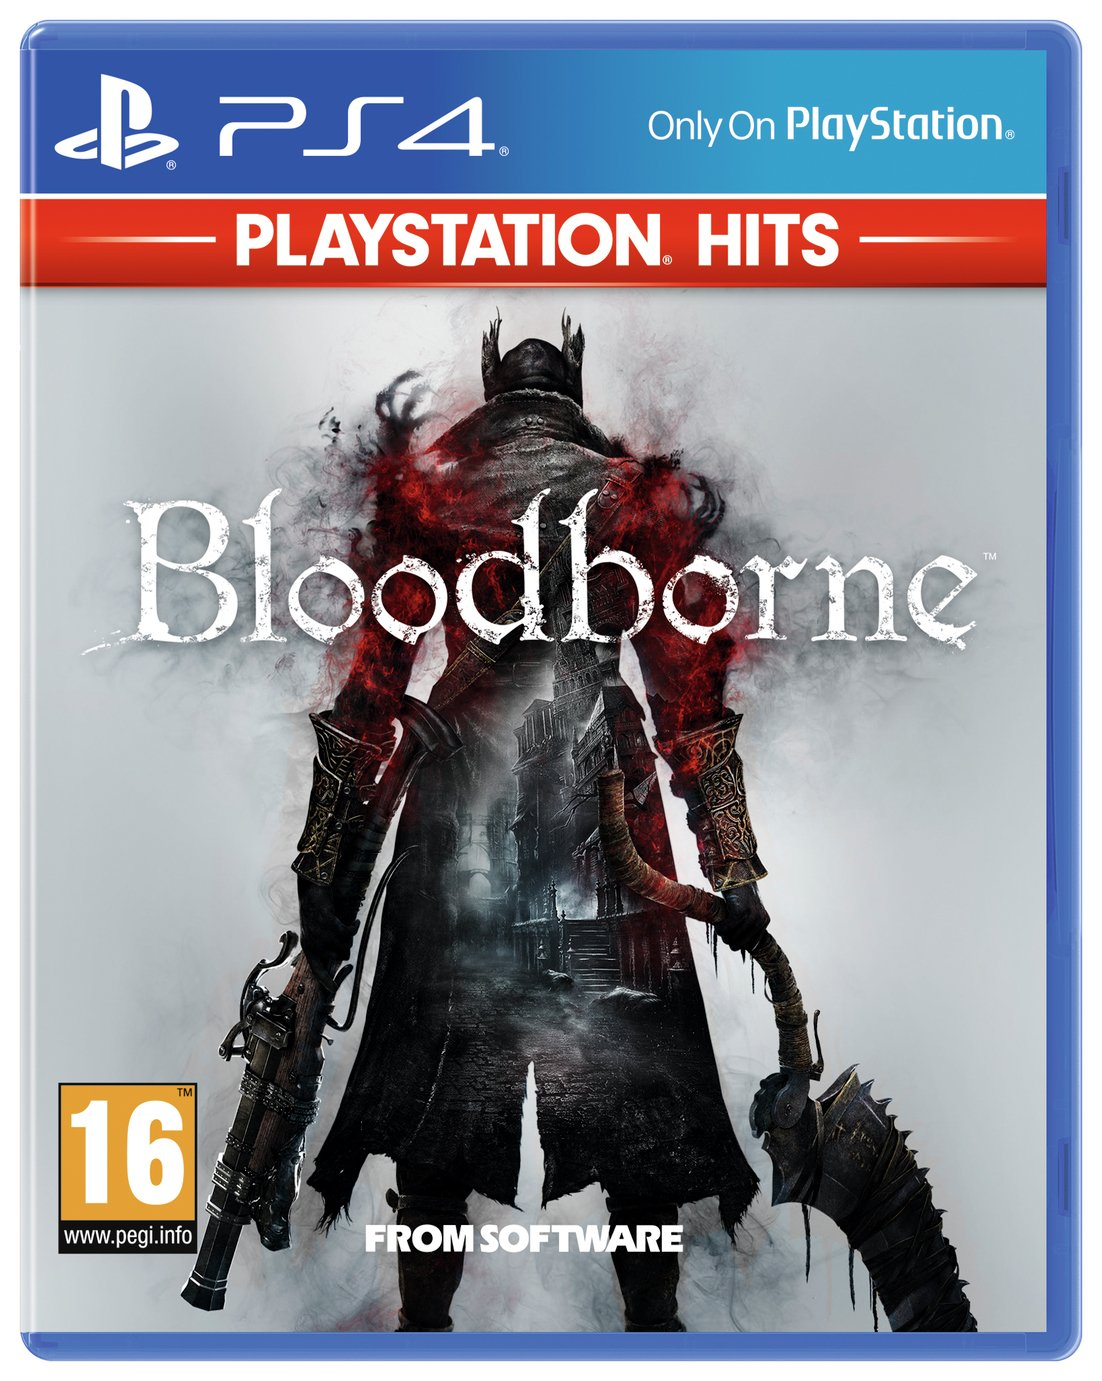 Bloodborne PS4 Hits Game